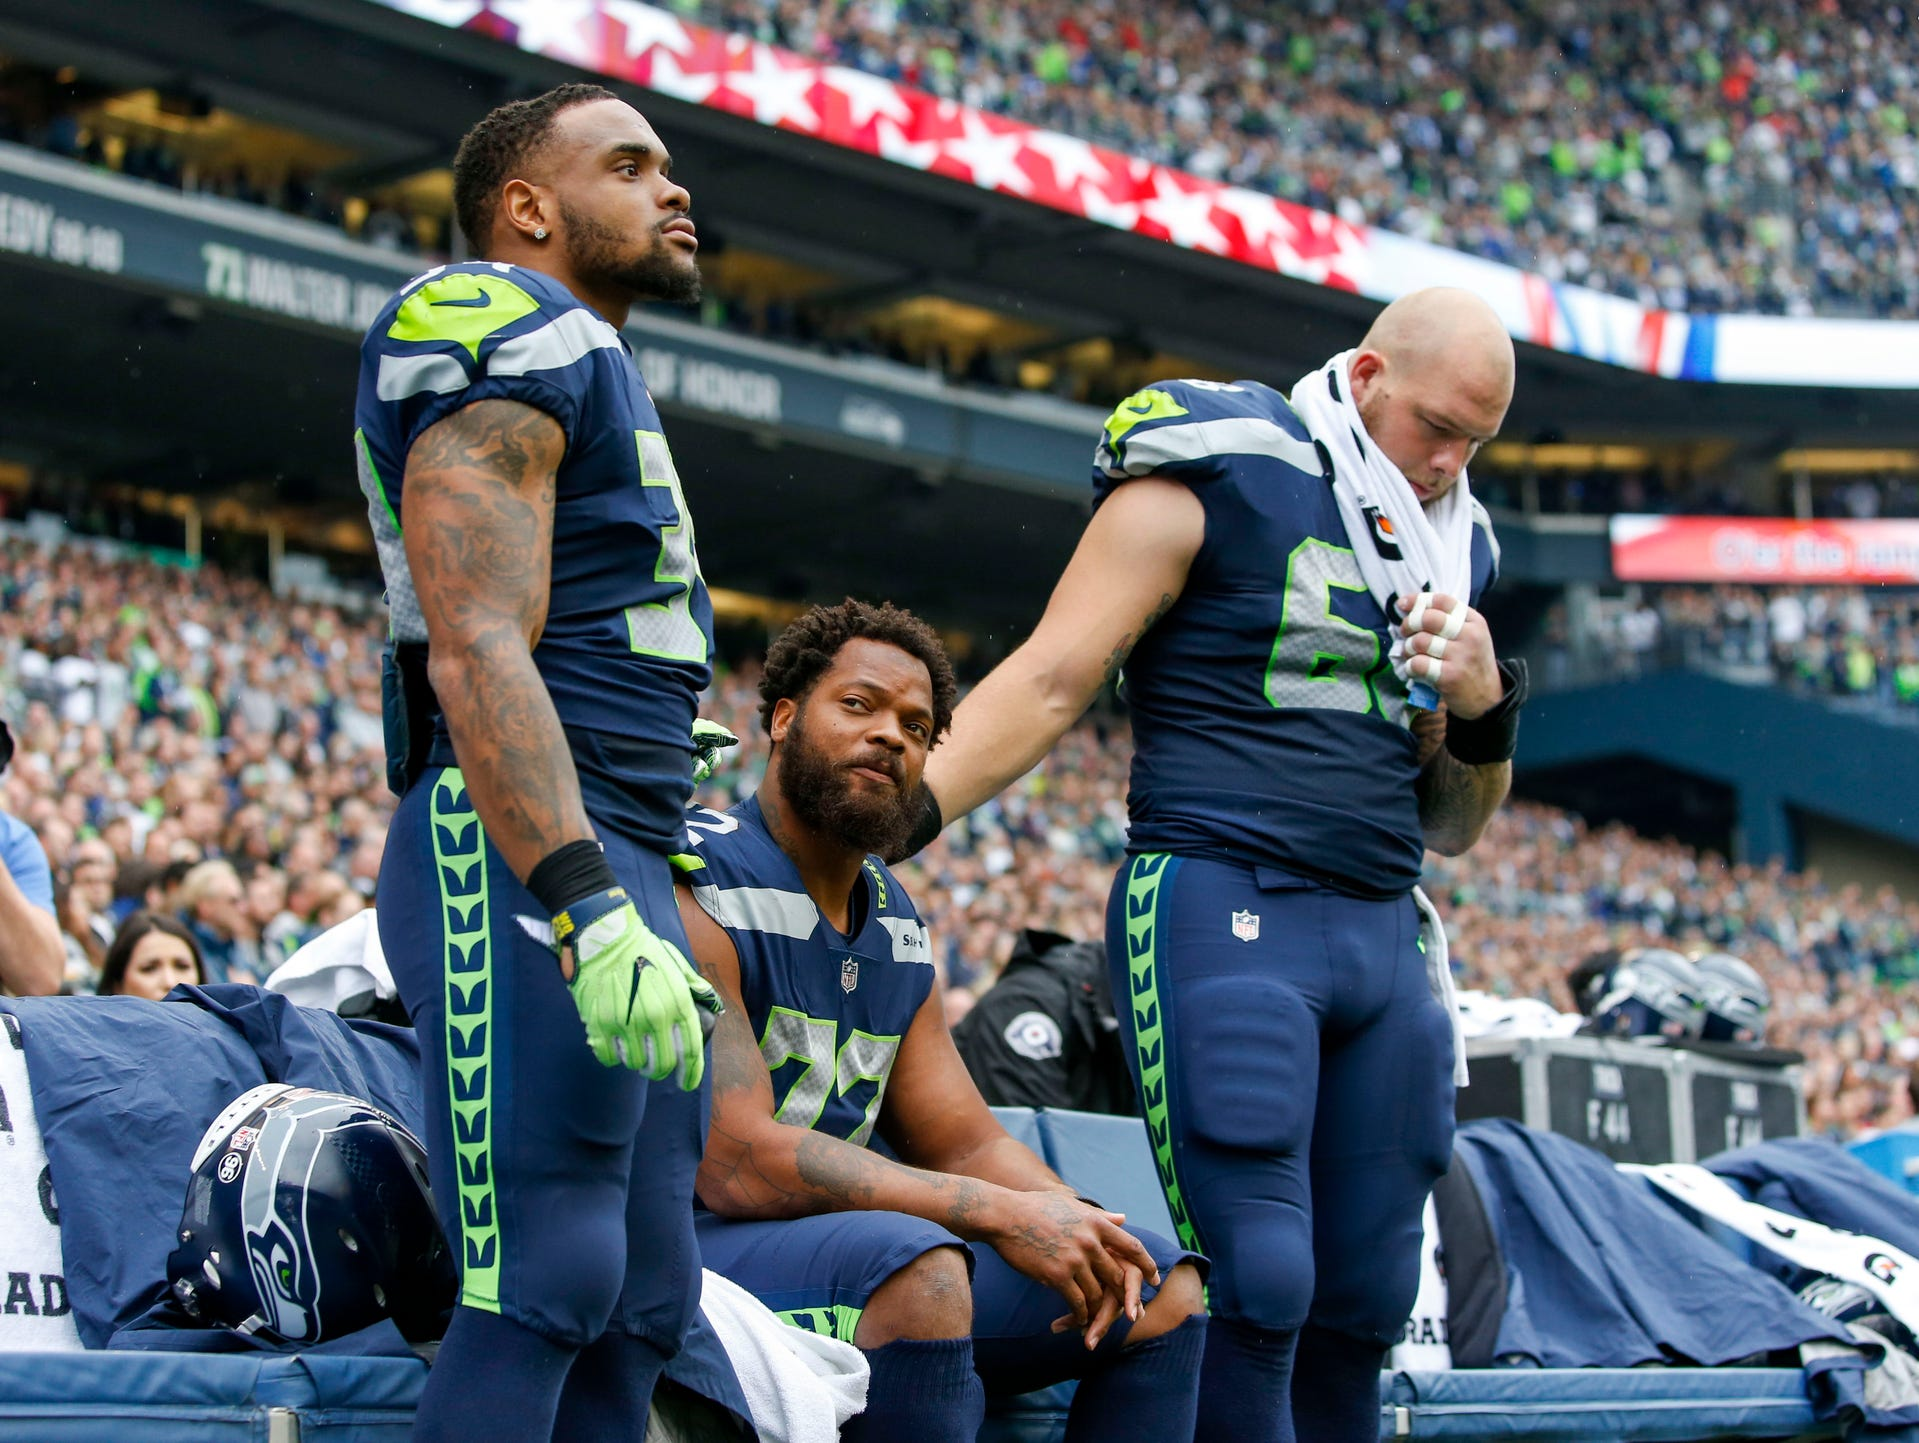 President Donald Trump calls out Roger Goodell, rails against NFL player protests again